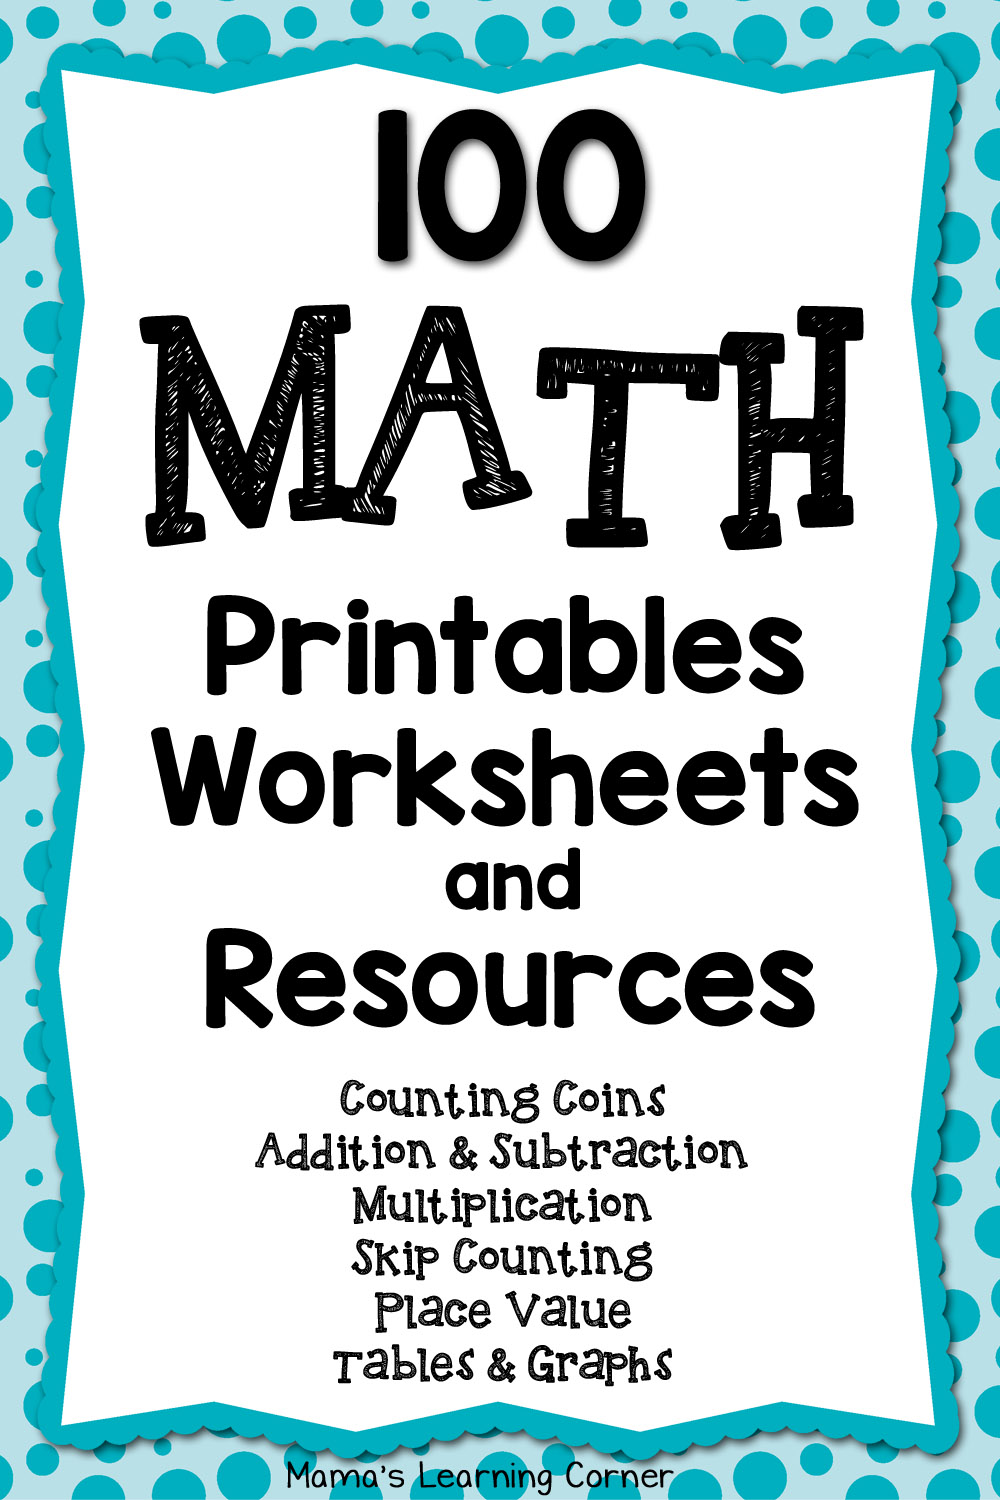 Math Worksheets, Printables, and Resources - over 100 links!